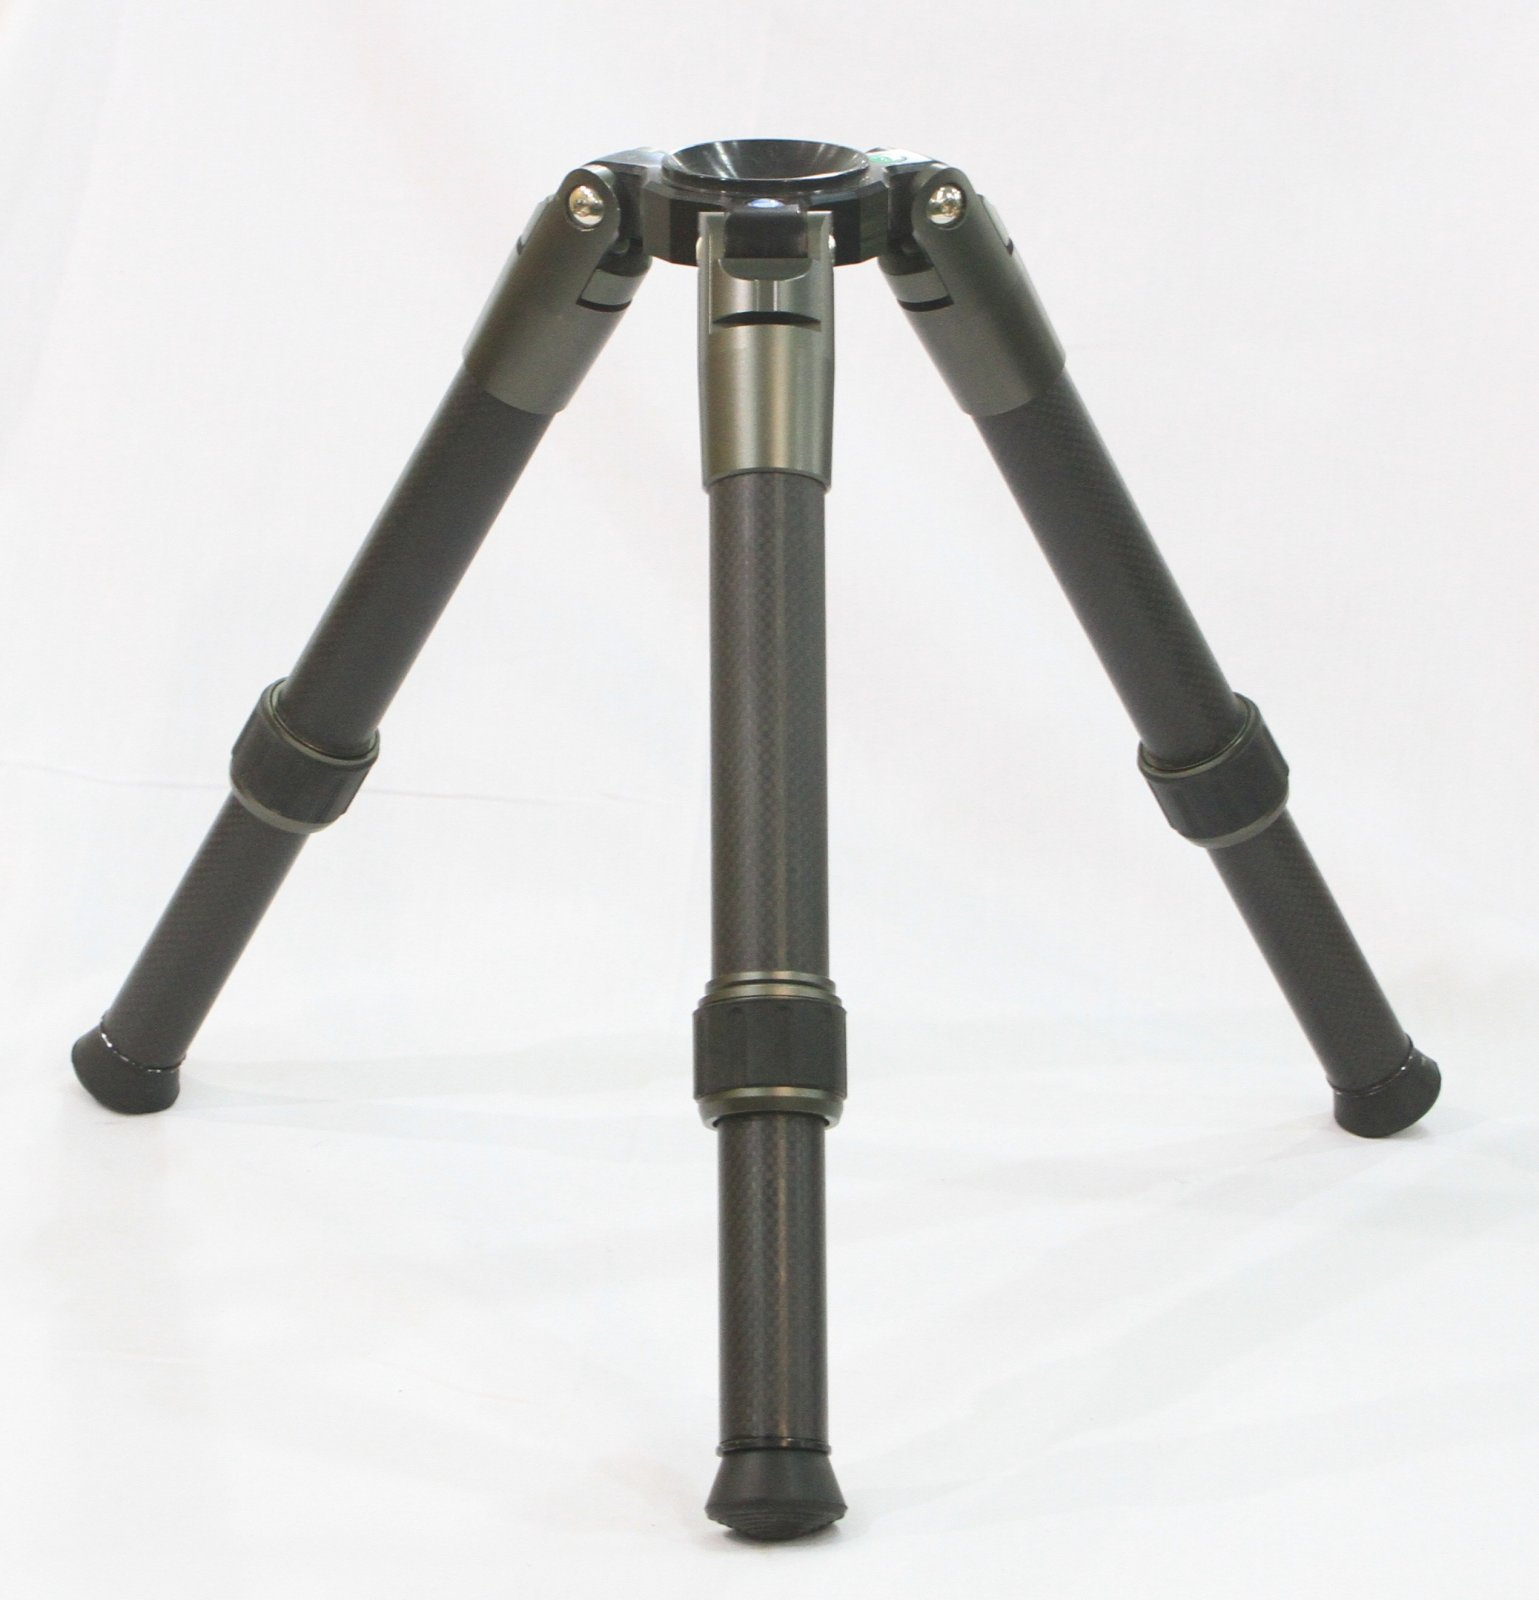 BT Precision Ground Tripod